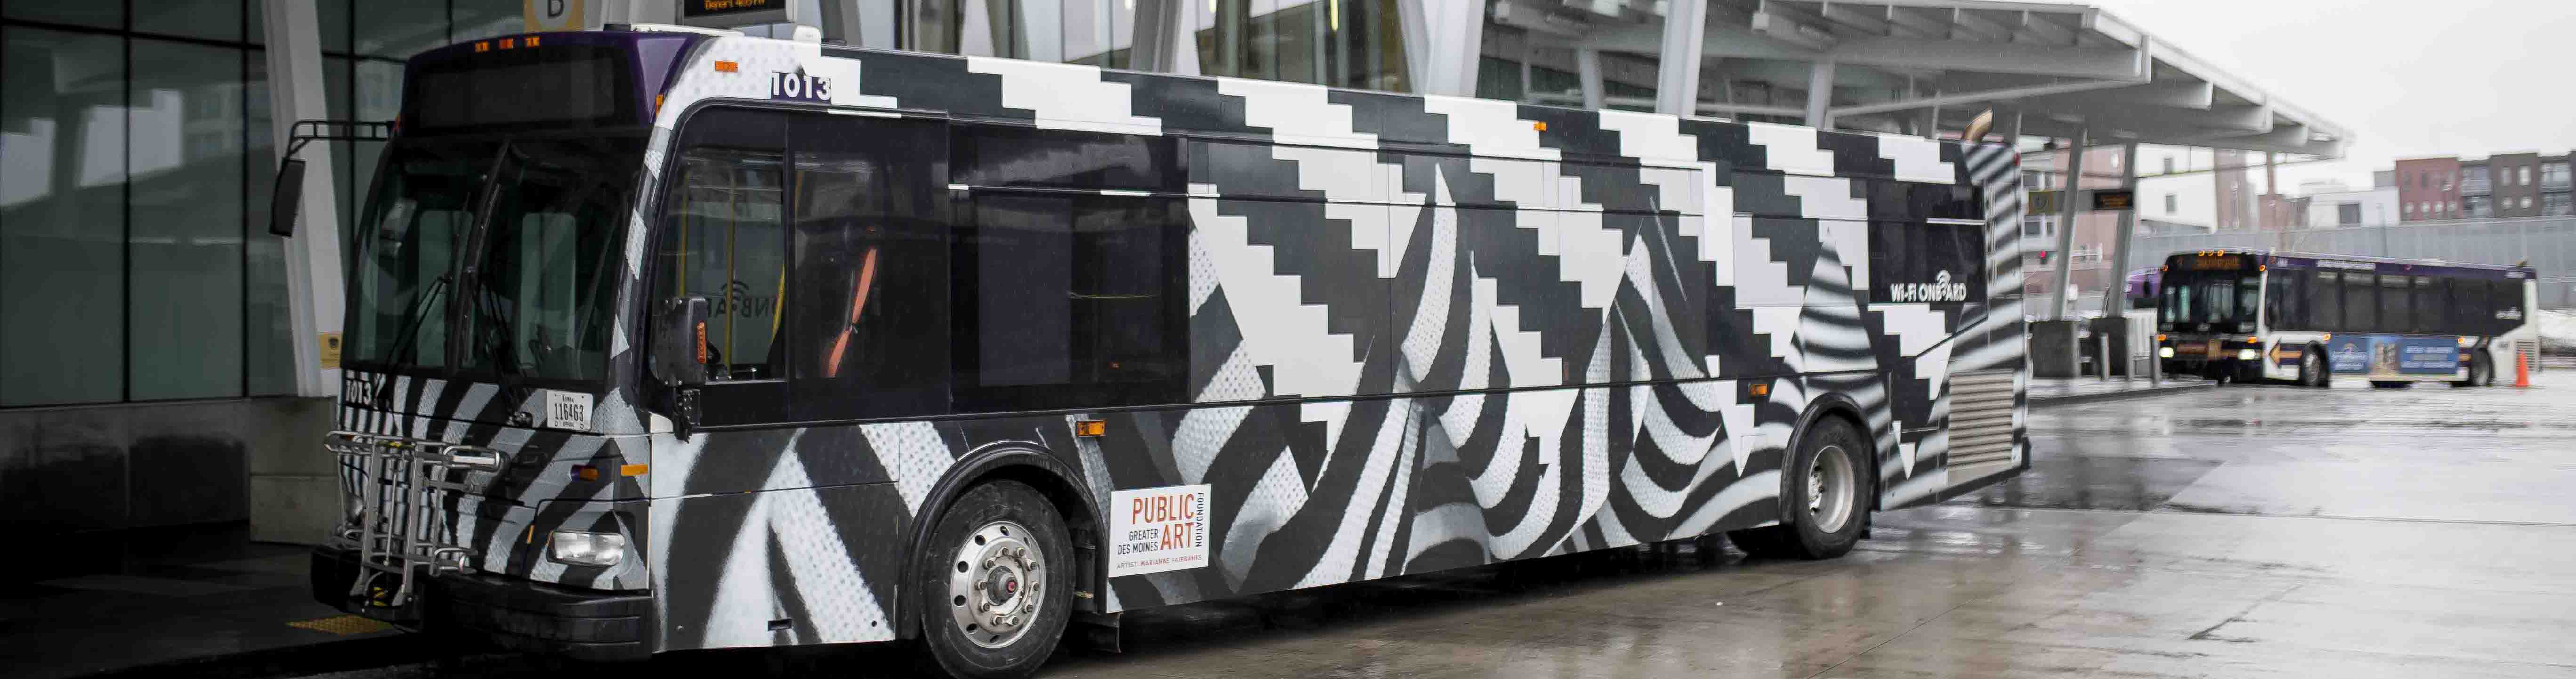 Ninth public art bus unveiled in DART Central Station flash mob